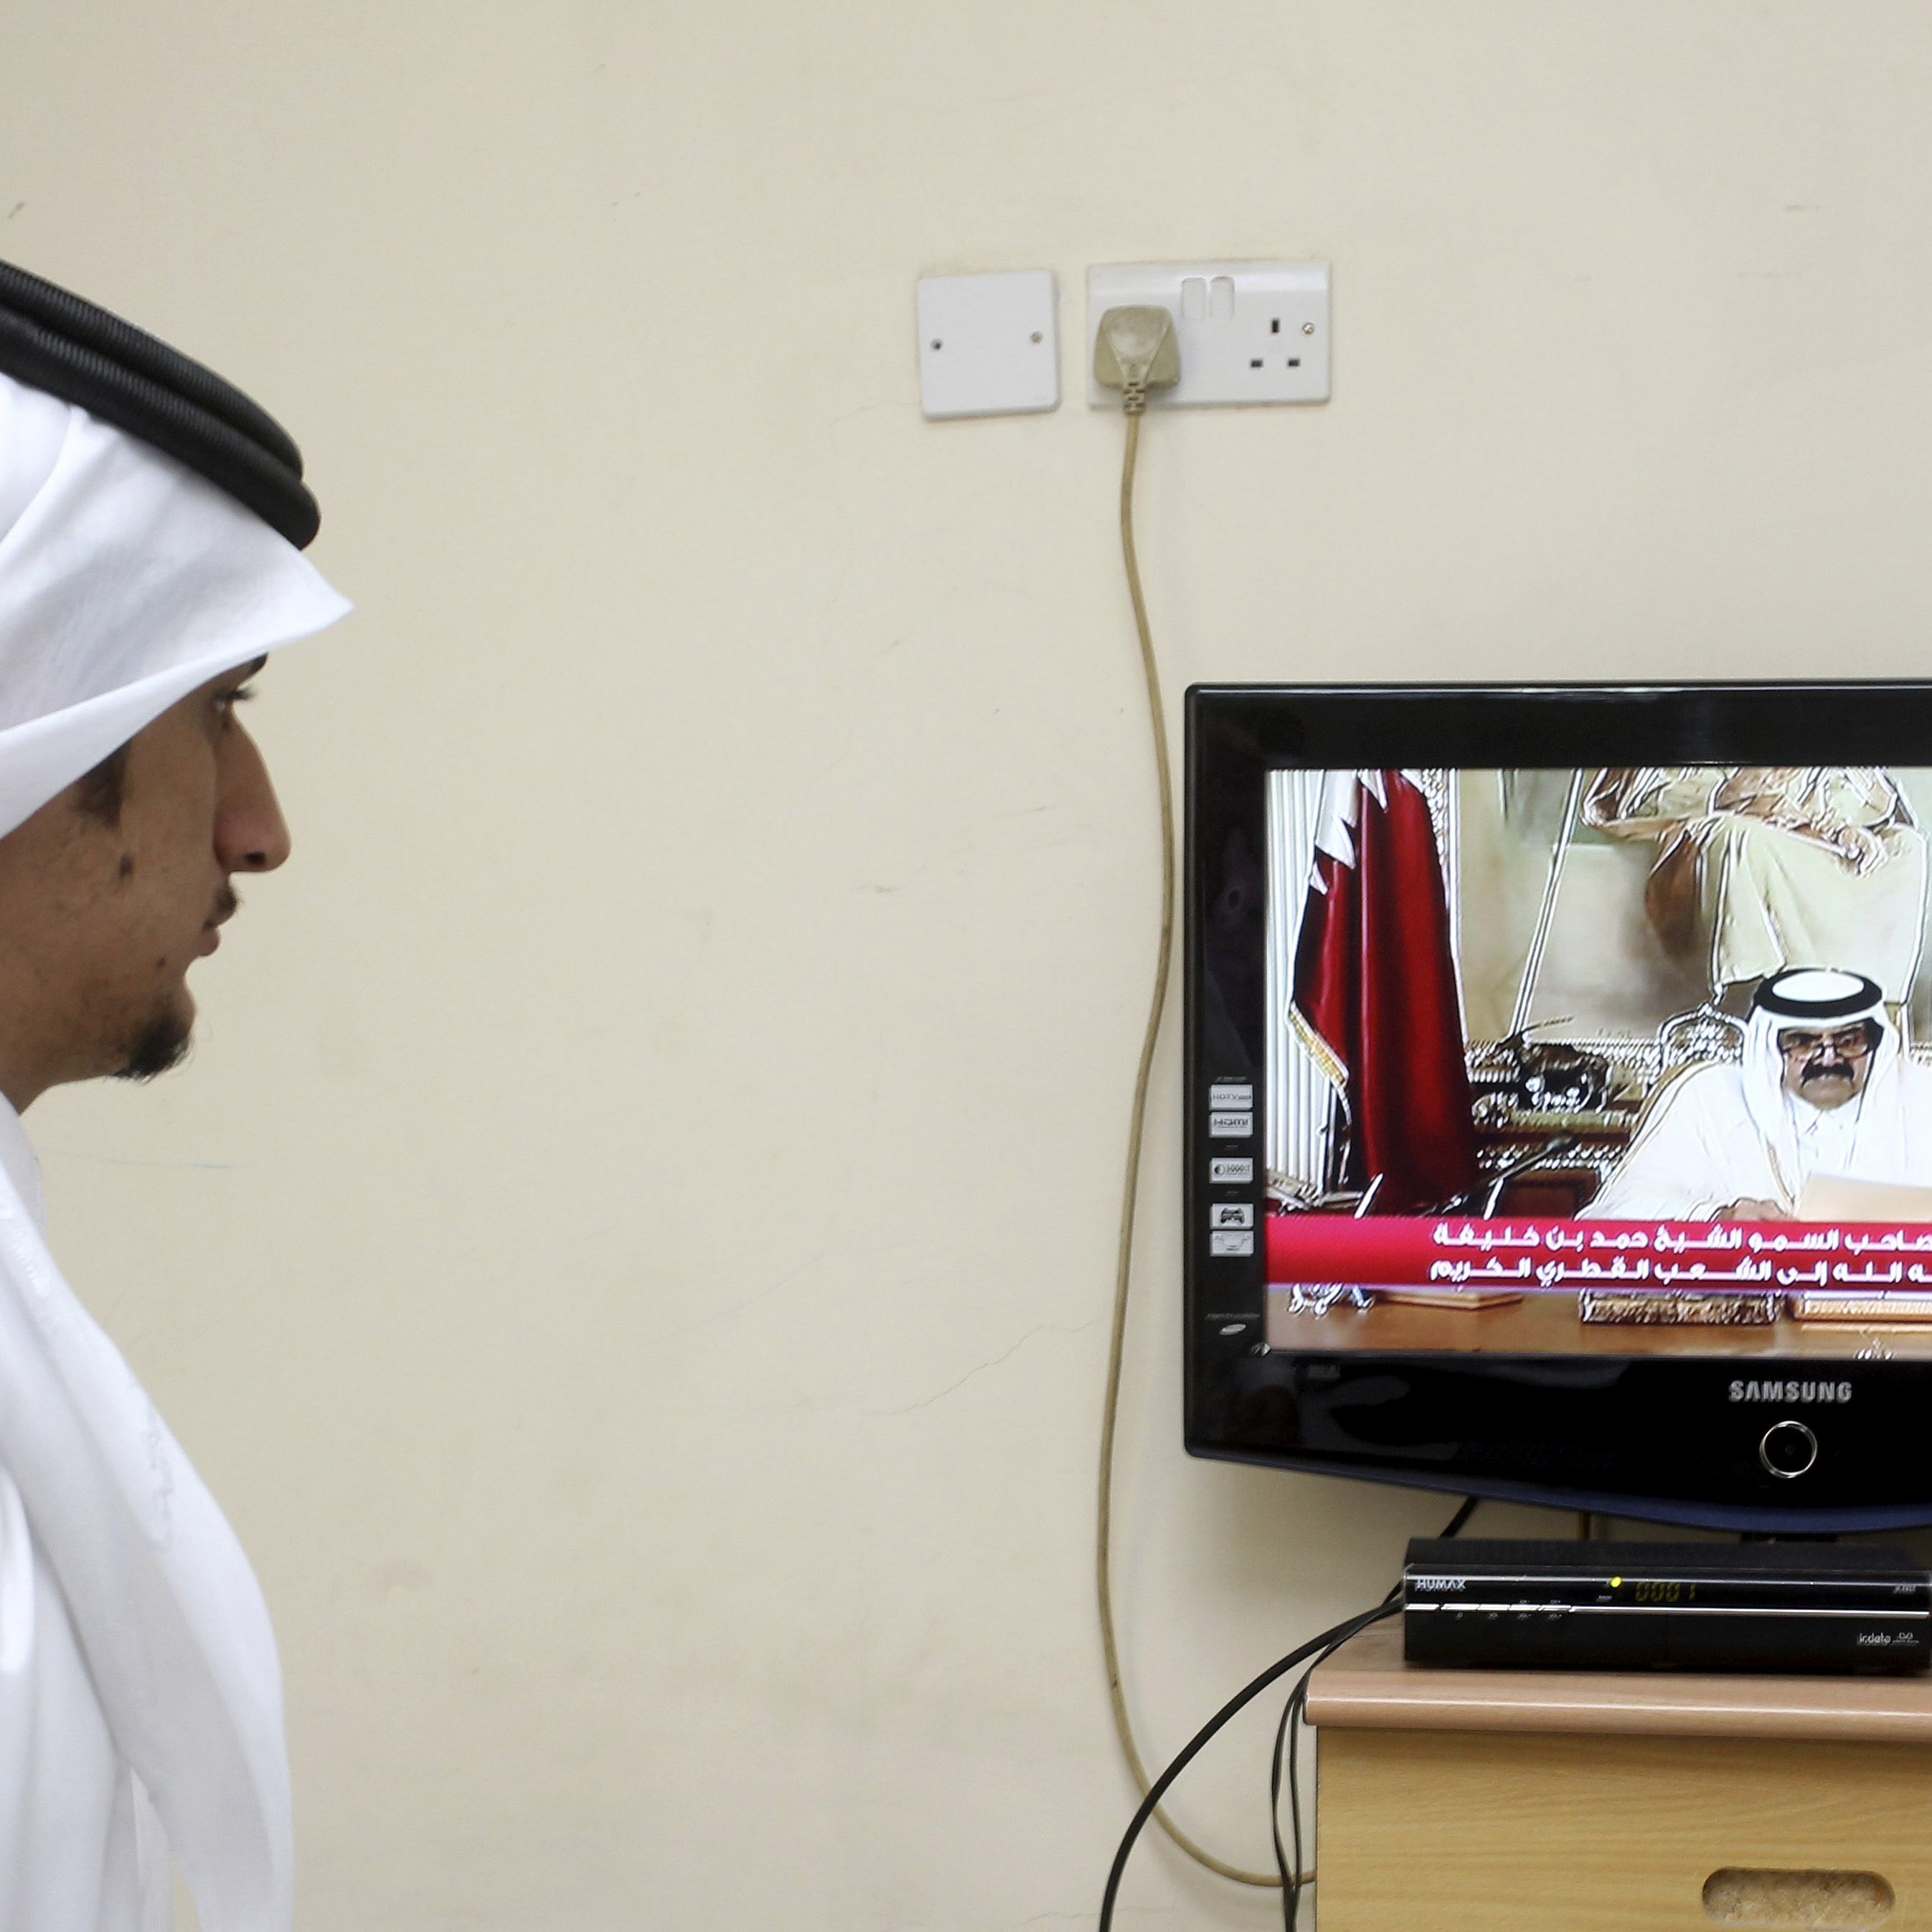 A man watches a televised address by Qatar's Emir Sheik Hamad bin Khalifa al-Thani, in Doha, Qatar, on Tuesday. Qatar's ruler transferred power to his 33-year-old son, making him the youngest leader in the region.